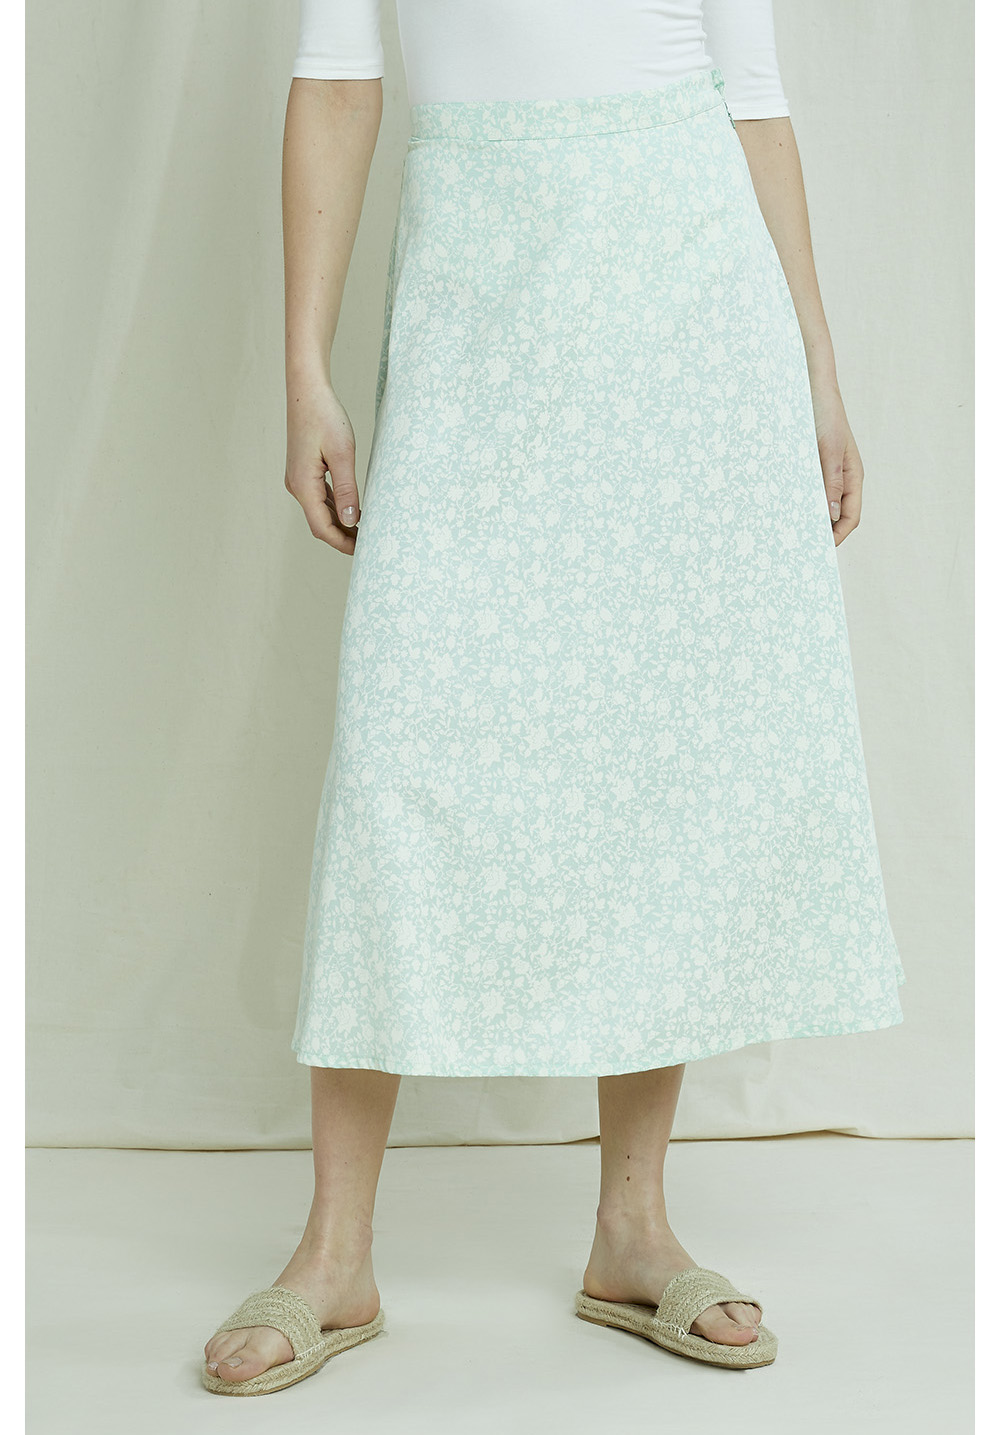 Alison Silhouette Floral Skirt